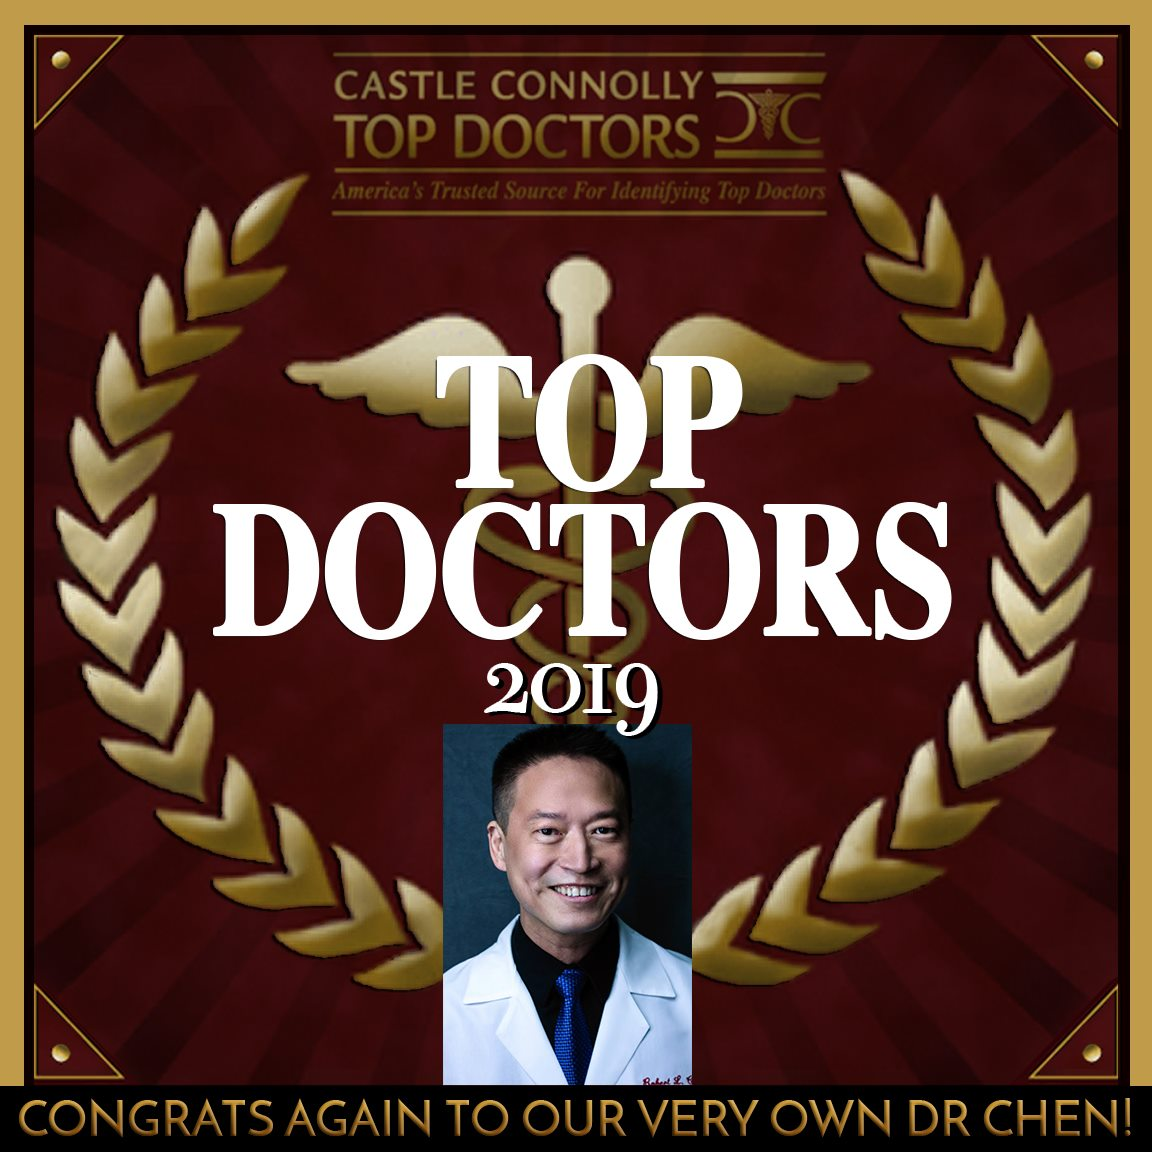 Dr. Robert L. Chen, MD, PhD - Named A Top Dermatologist in the American Southeast